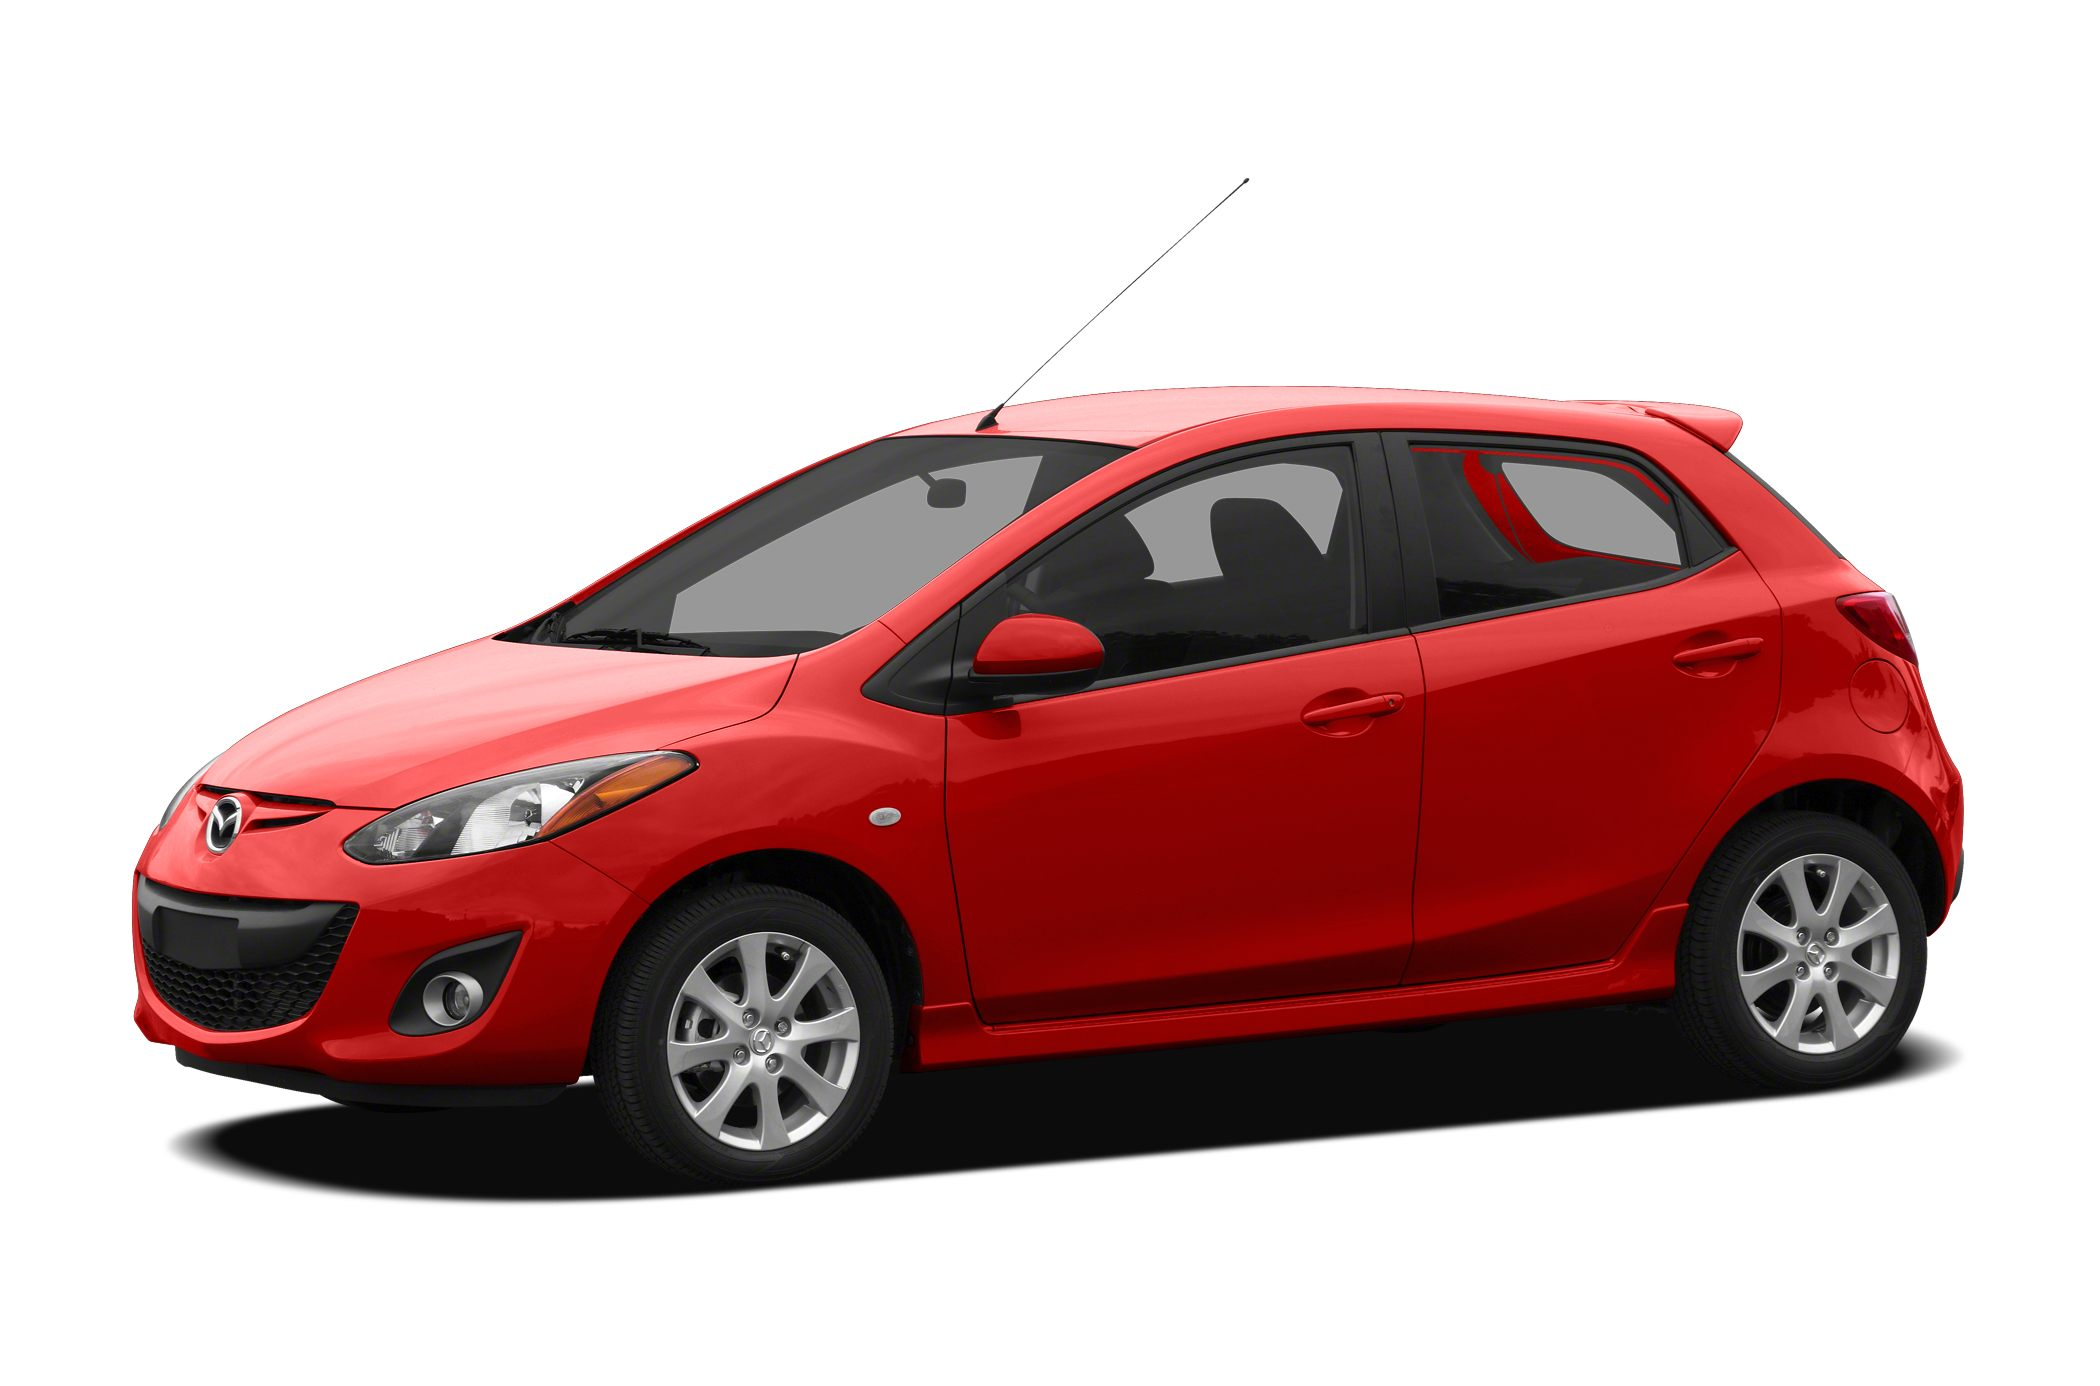 2011 Mazda Mazda2 Touring Hatchback for sale in LANCASTER for $11,995 with 62,802 miles